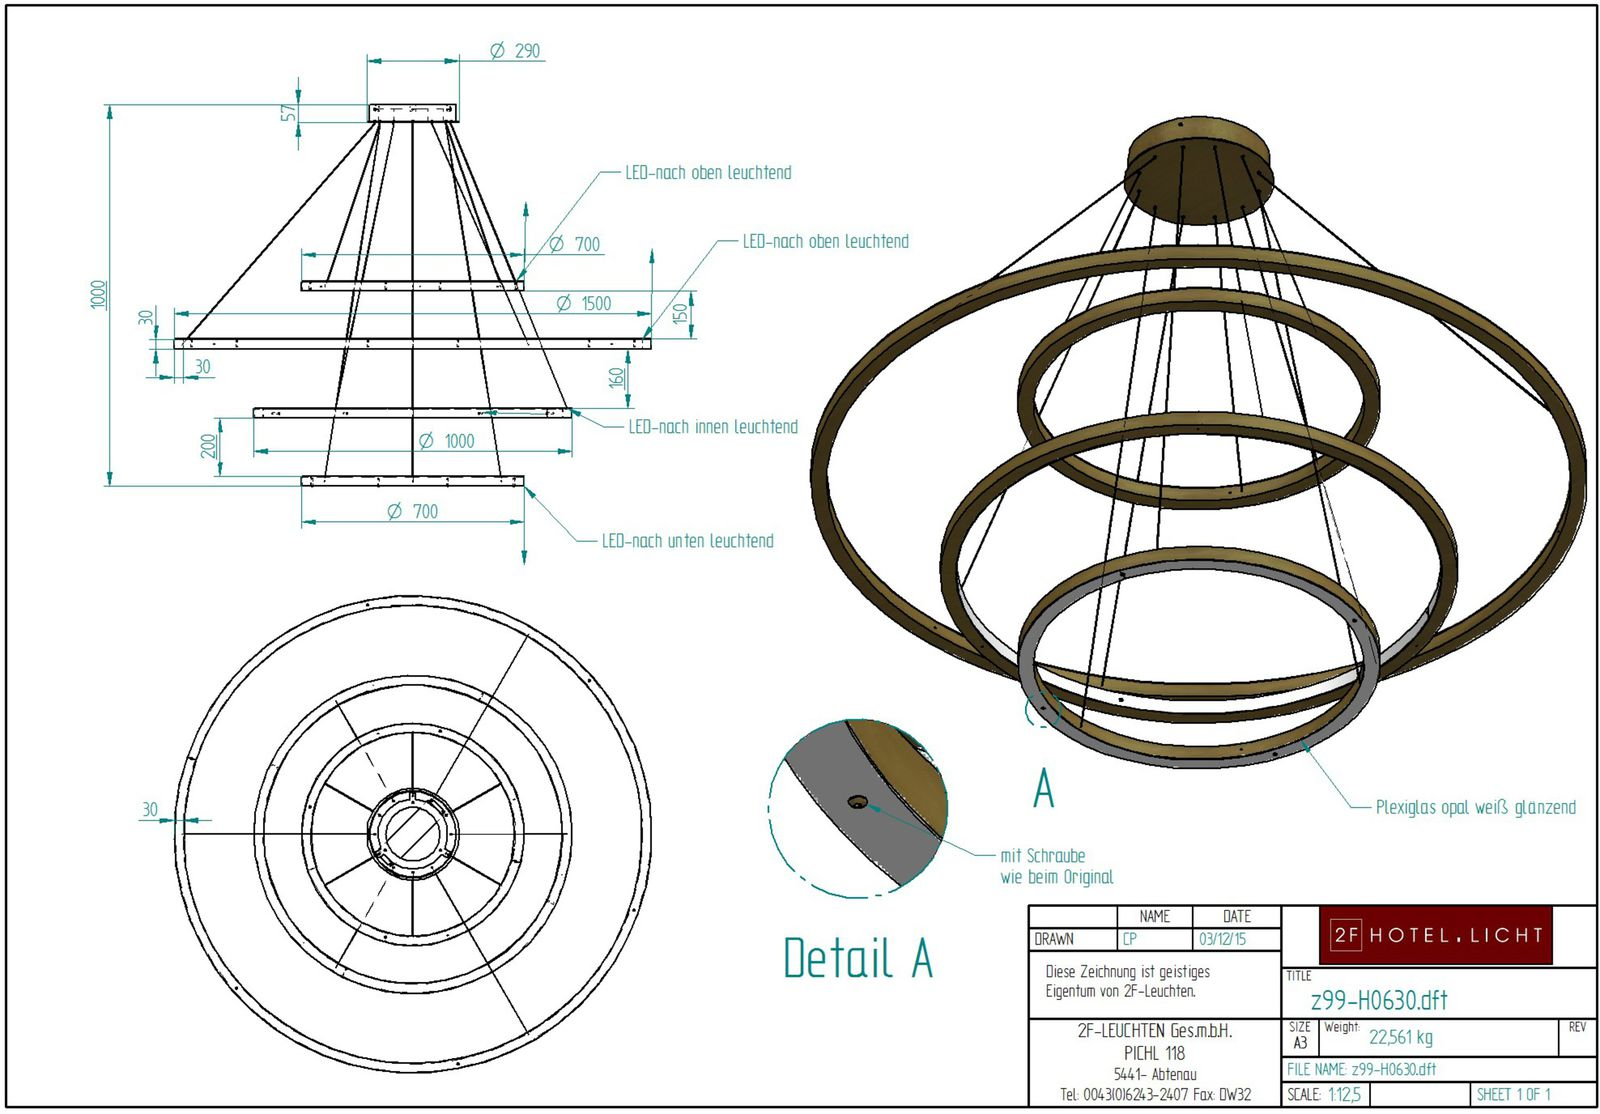 pendant with 4 rings with plexiglas white opal, L:Ø1500mm, H:1000mm, surface: MB brass, techn. Data: 26W LED strip, 3000K, 24V, switch: not dimmable